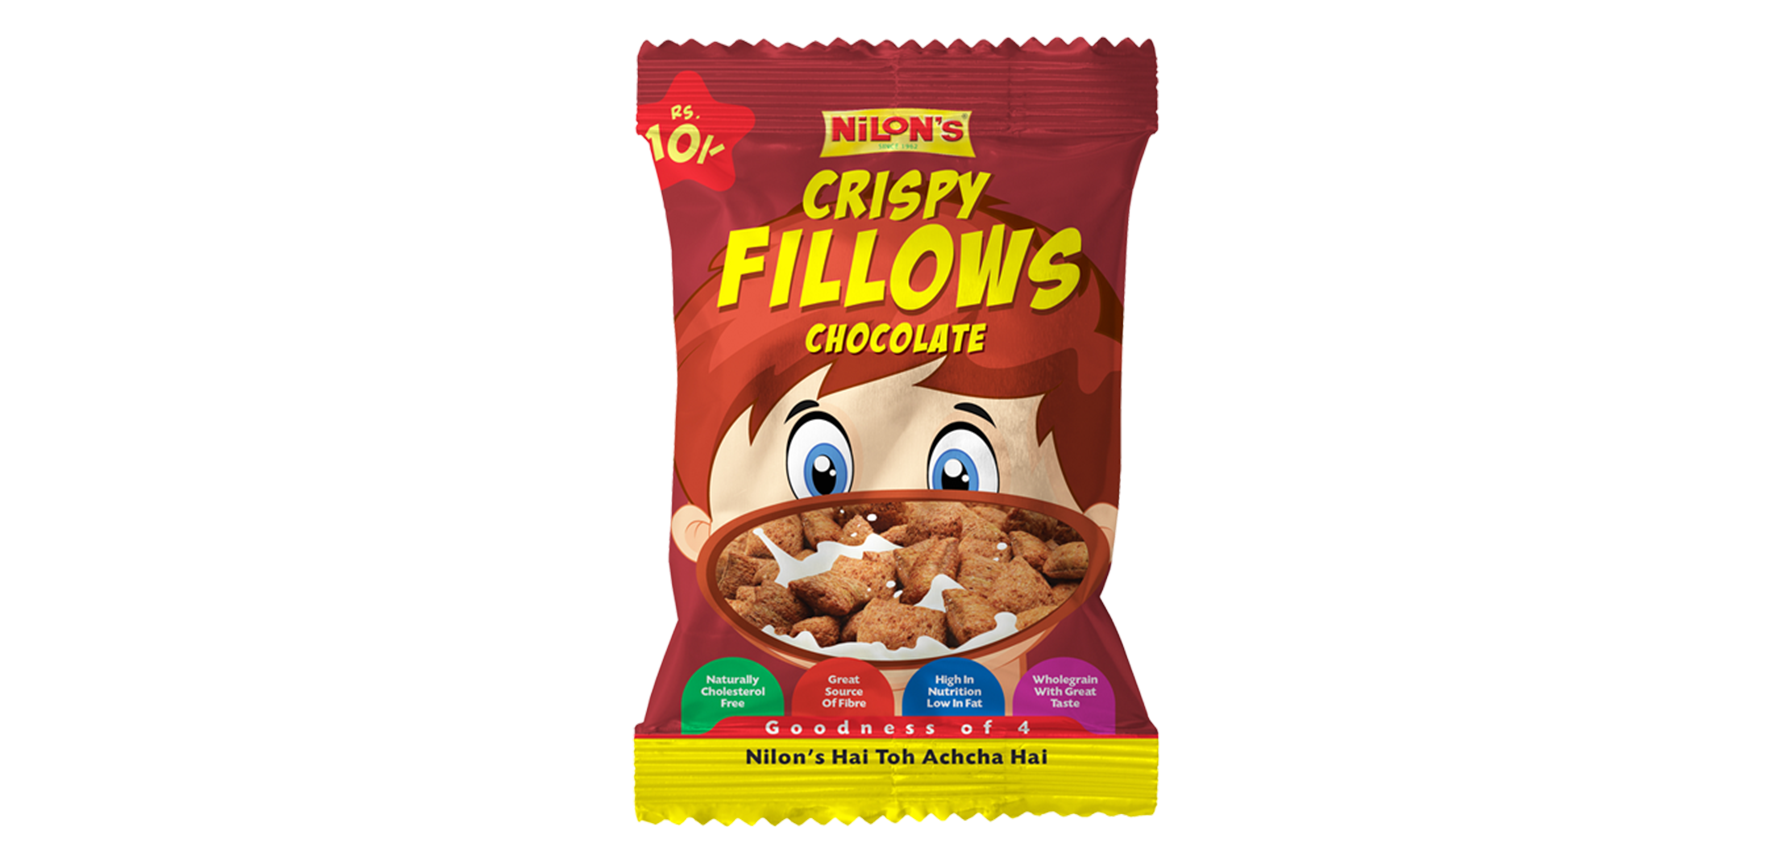 Crispy Fillows Chocolate